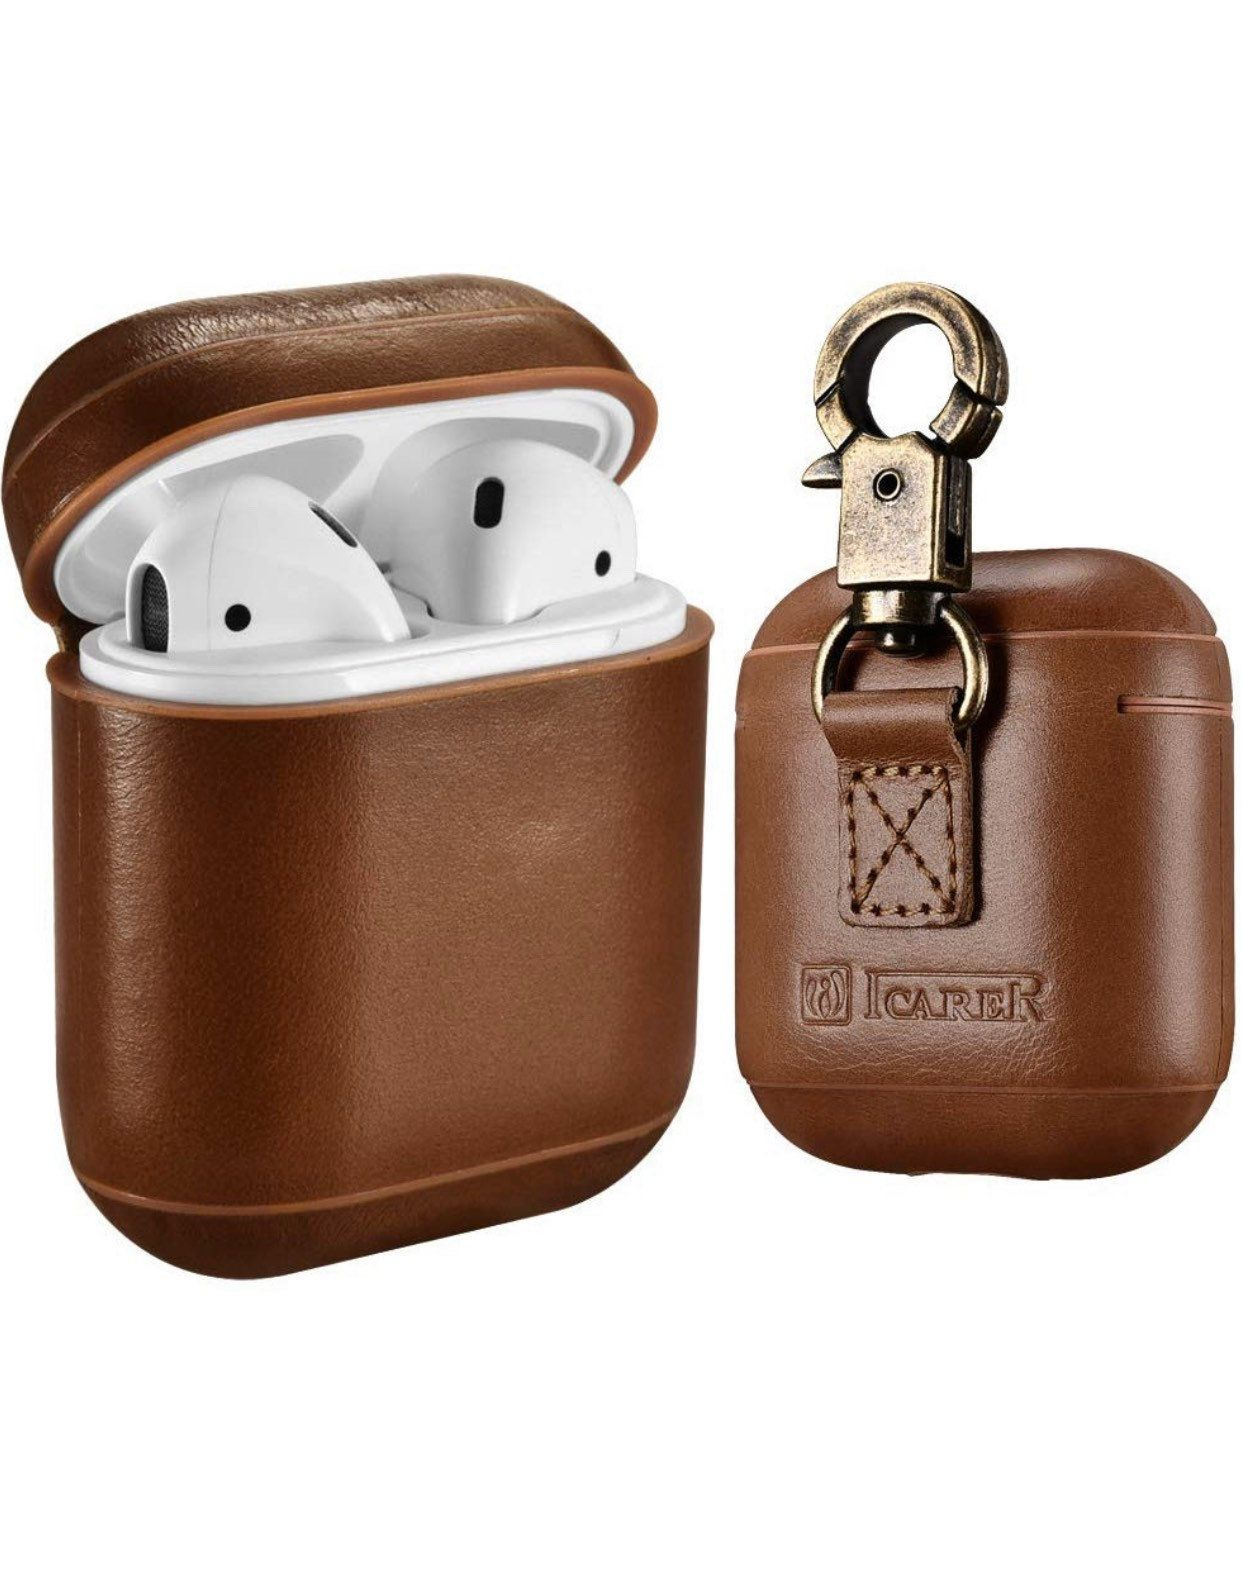 Airpods Leather Case Icarer Genuine Leather Airpod Case With Keychain Apple Airpods 2 Case Airpods 1 Support Wireless Leather Genuine Leather Leather Case